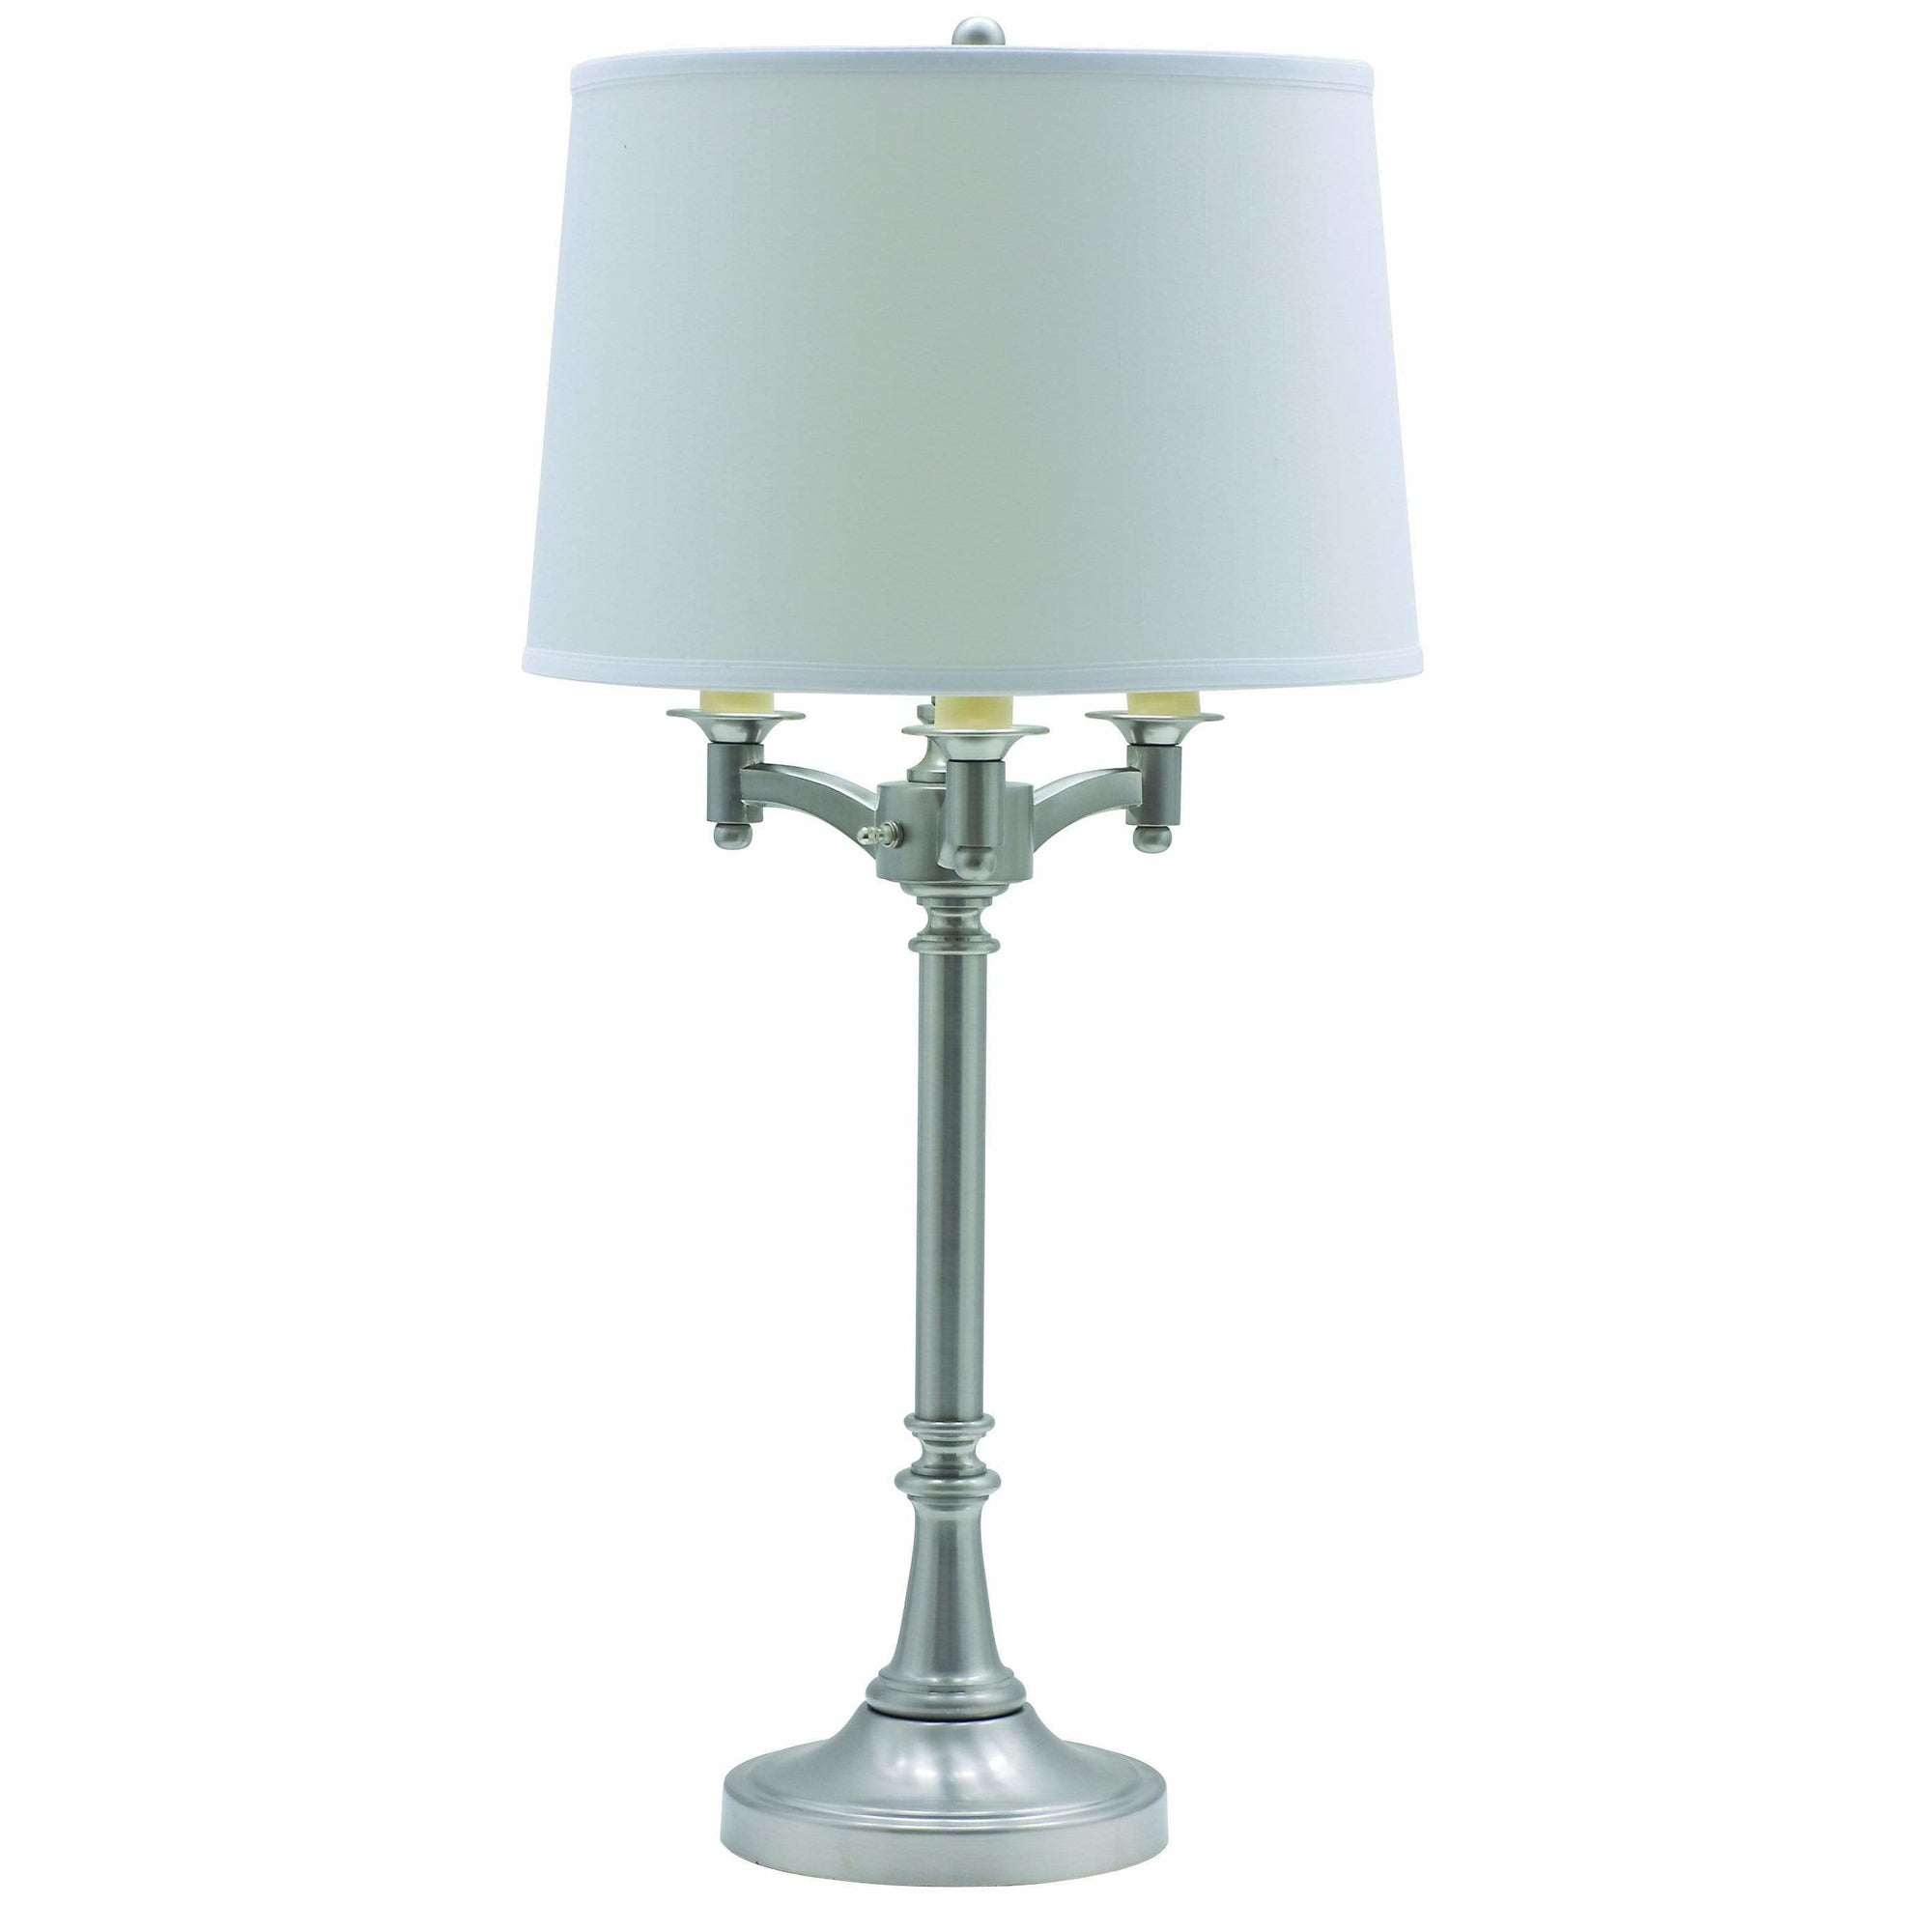 House Of Troy Table Lamps Lancaster Six-Way Table Lamp by House Of Troy L850-SN